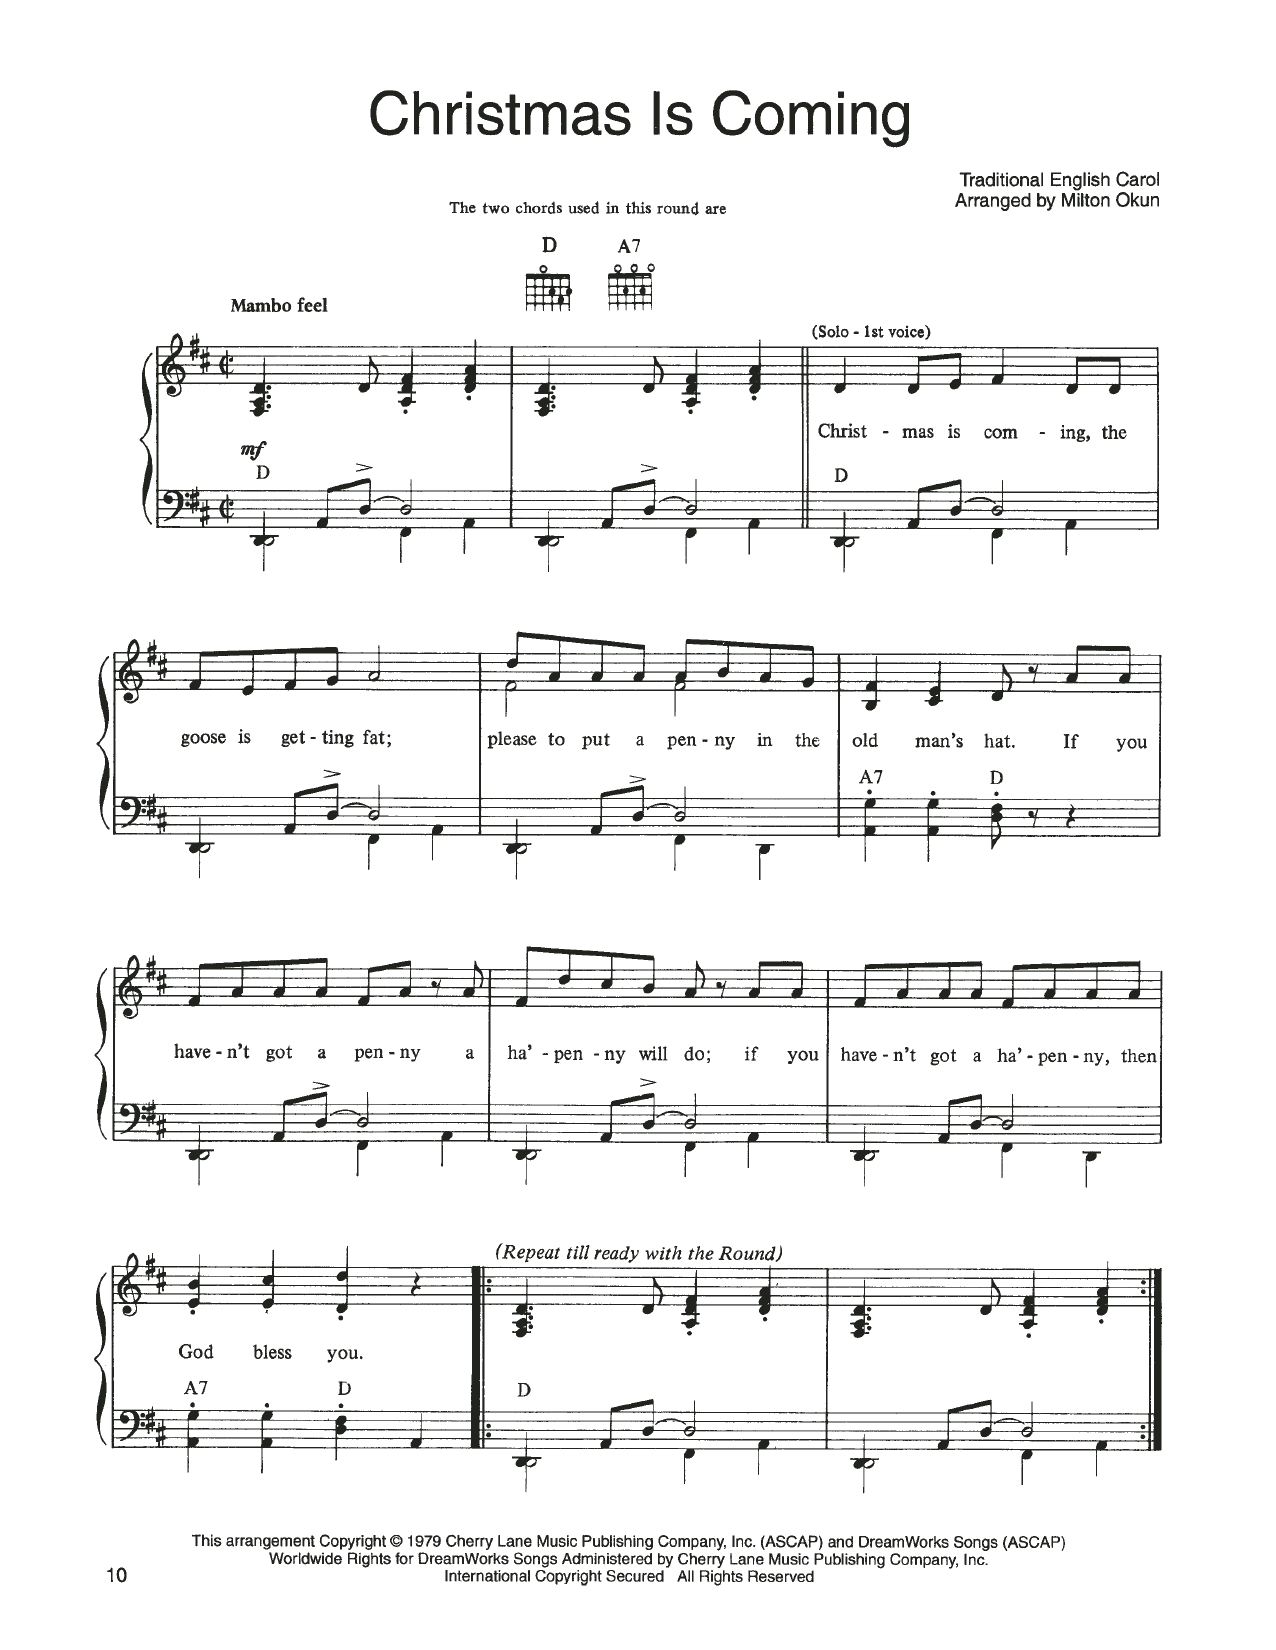 John Denver and The Muppets Christmas Is Coming (from A Christmas Together) sheet music notes printable PDF score